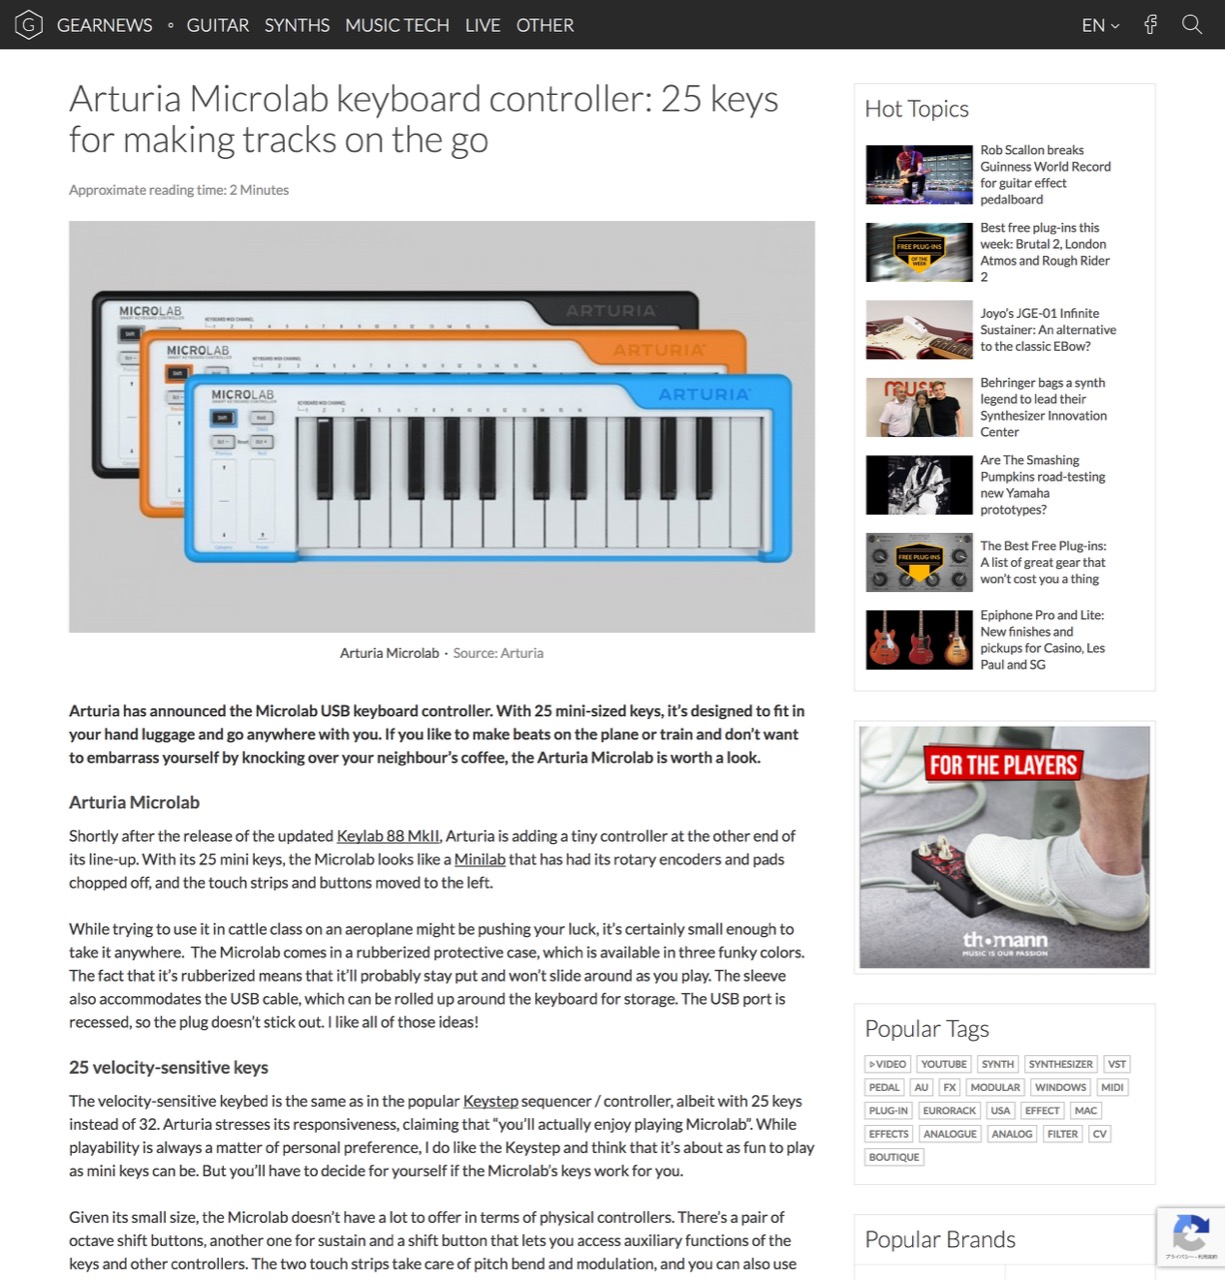 Arturia Microlab keyboard controller: 25 keys for making tracks on the go - gearnews.com